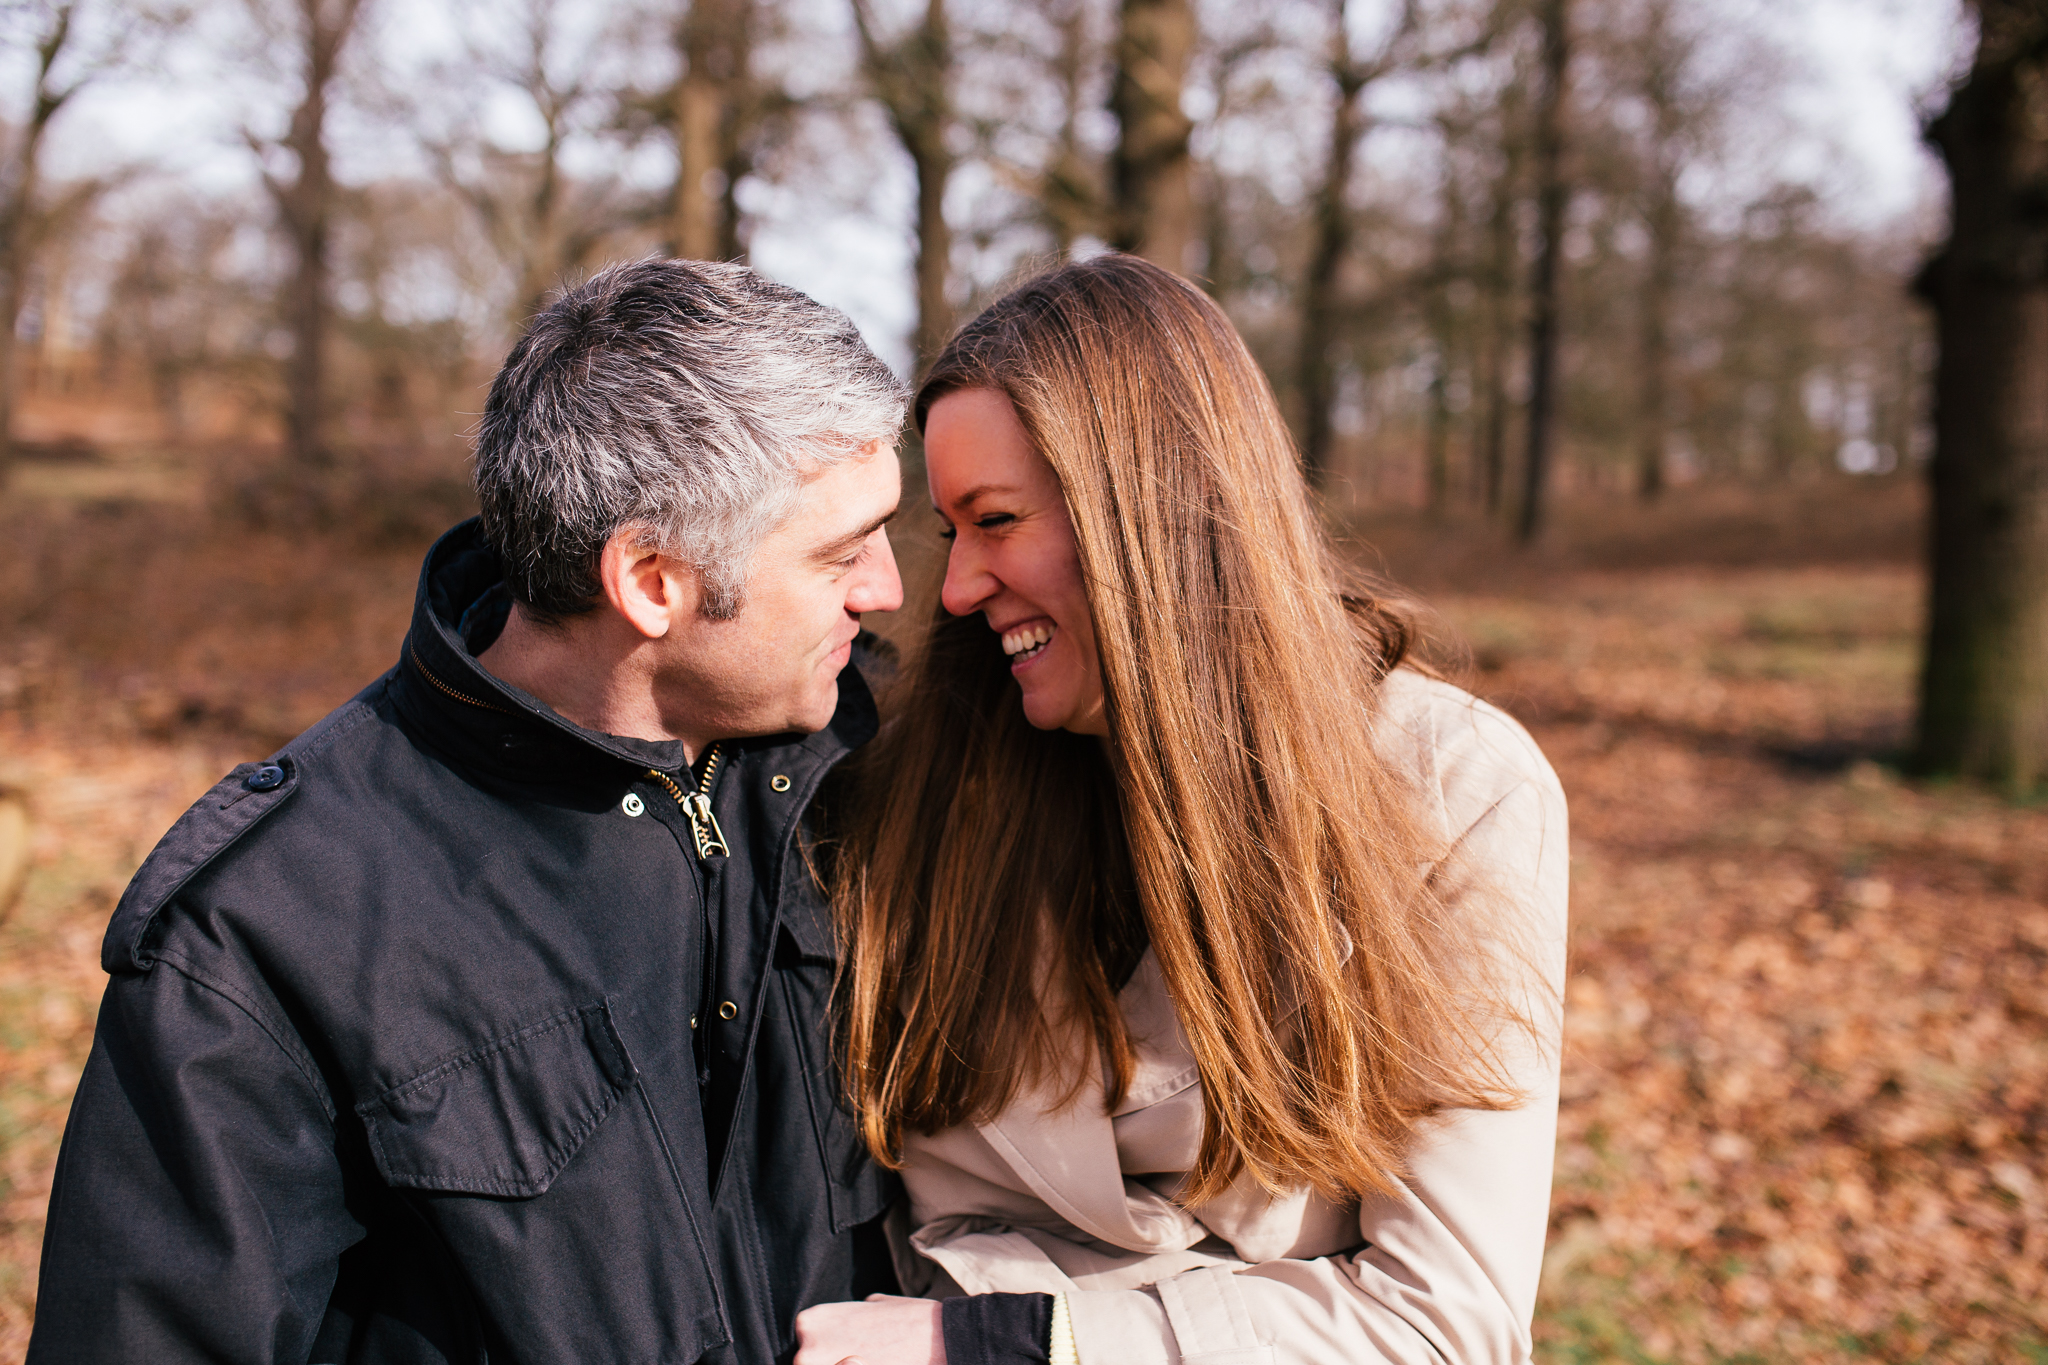 Richmond Park Engagement Photography Wedding Photographer Surrey (7 of 54).jpg